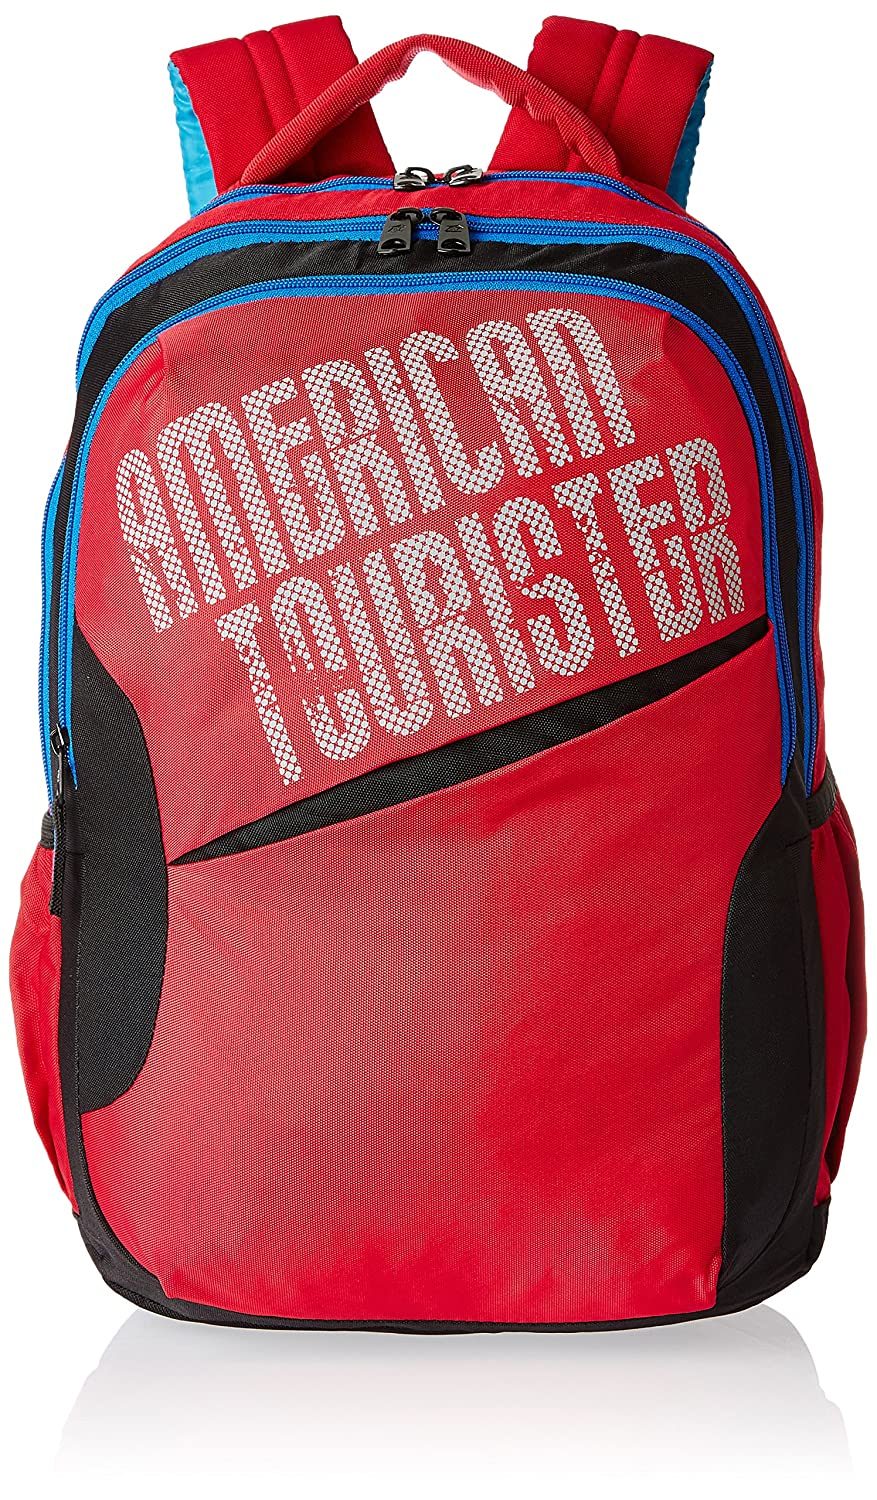 ... american tourister red and grey backpack fenix toulouse handball ... 1f60cf5272381